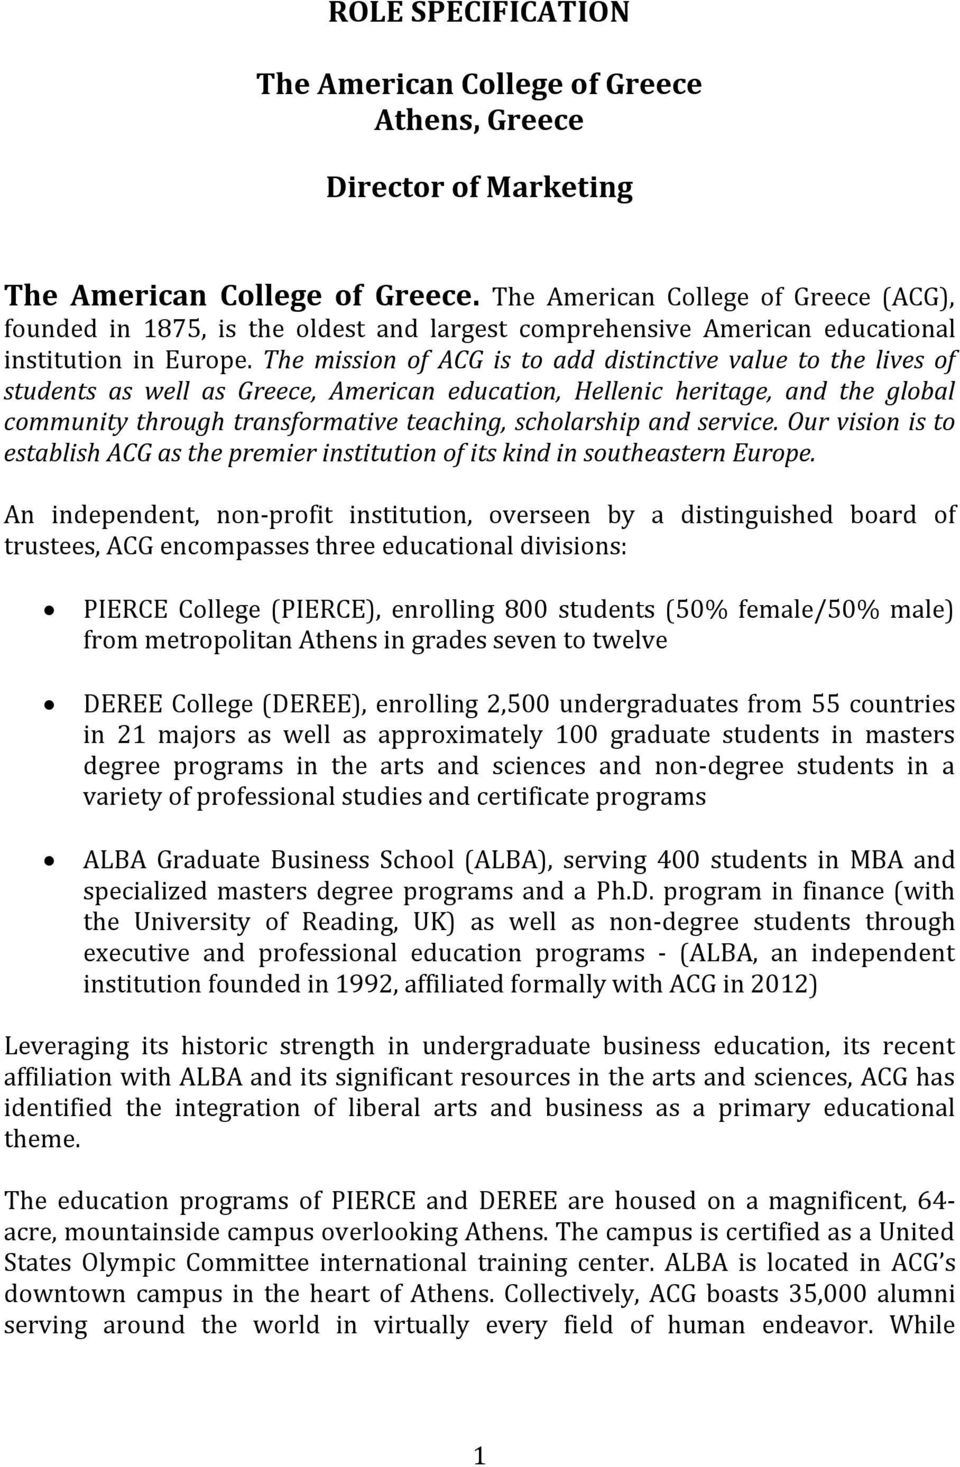 The mission of ACG is to add distinctive value to the lives of students as well as Greece, American education, Hellenic heritage, and the global community through transformative teaching, scholarship